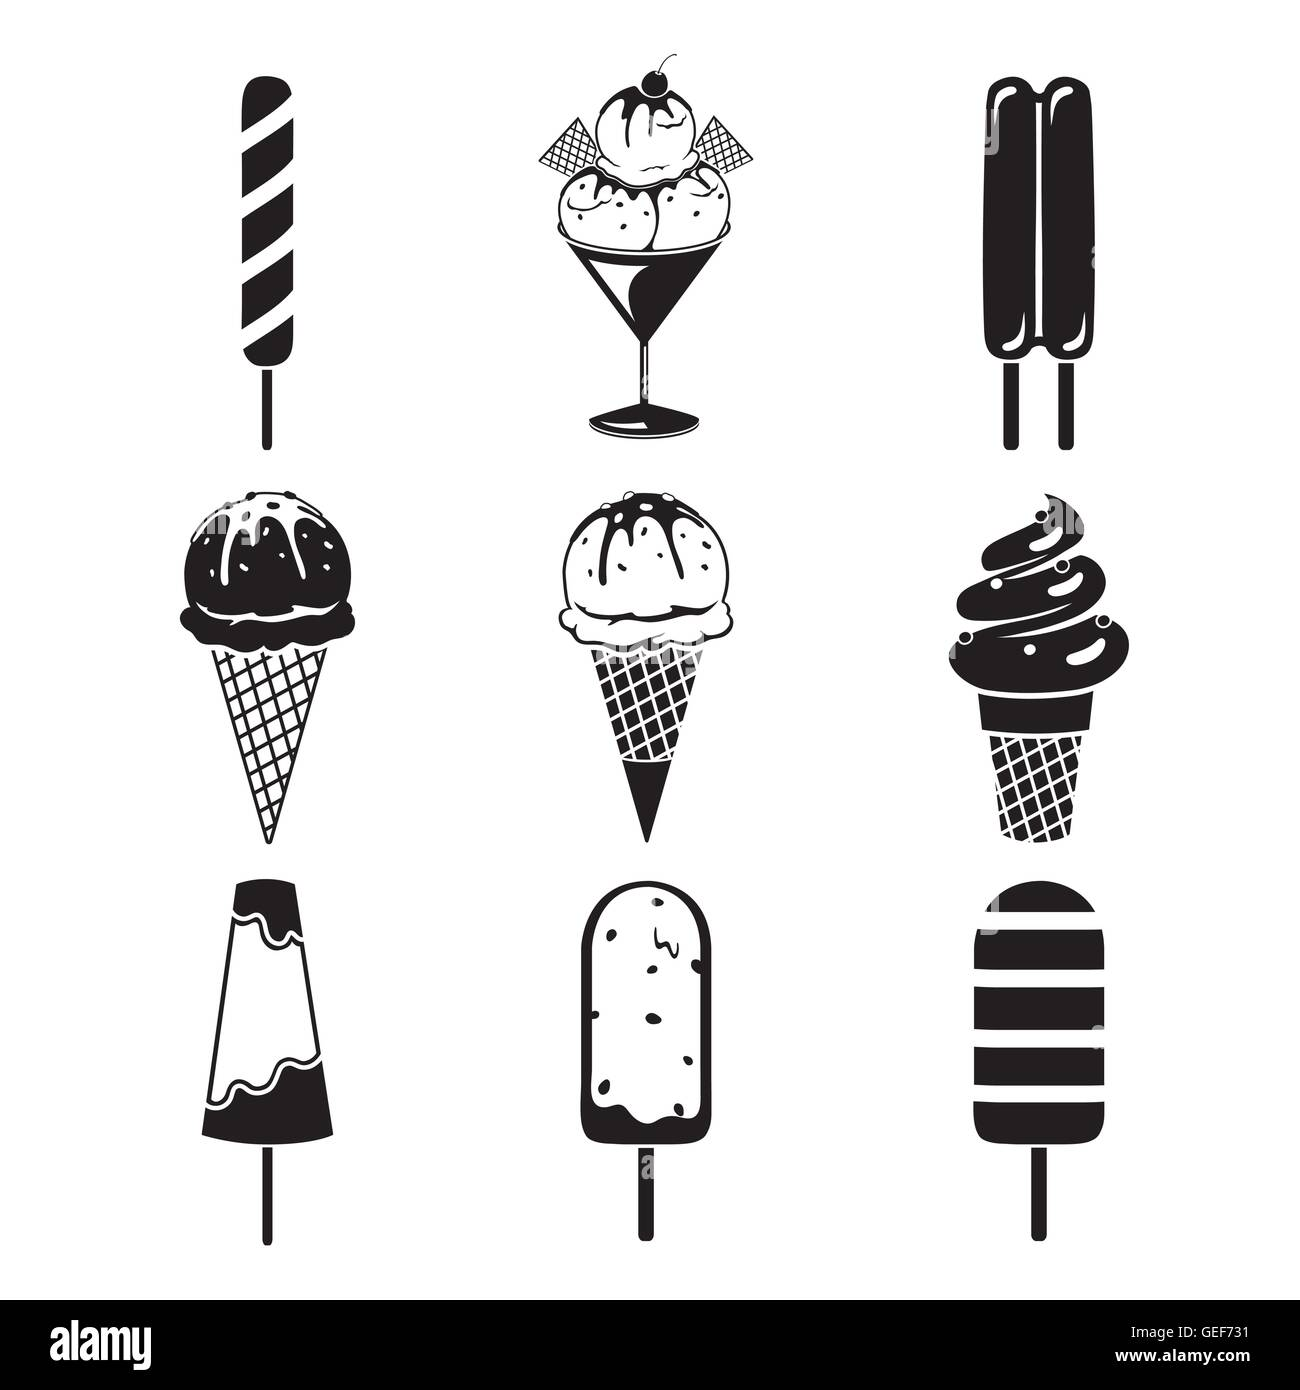 Ice Cream Objects Icons Set, Monochrome, Summer, Frozen Food, Eating, Icy Stock Vector